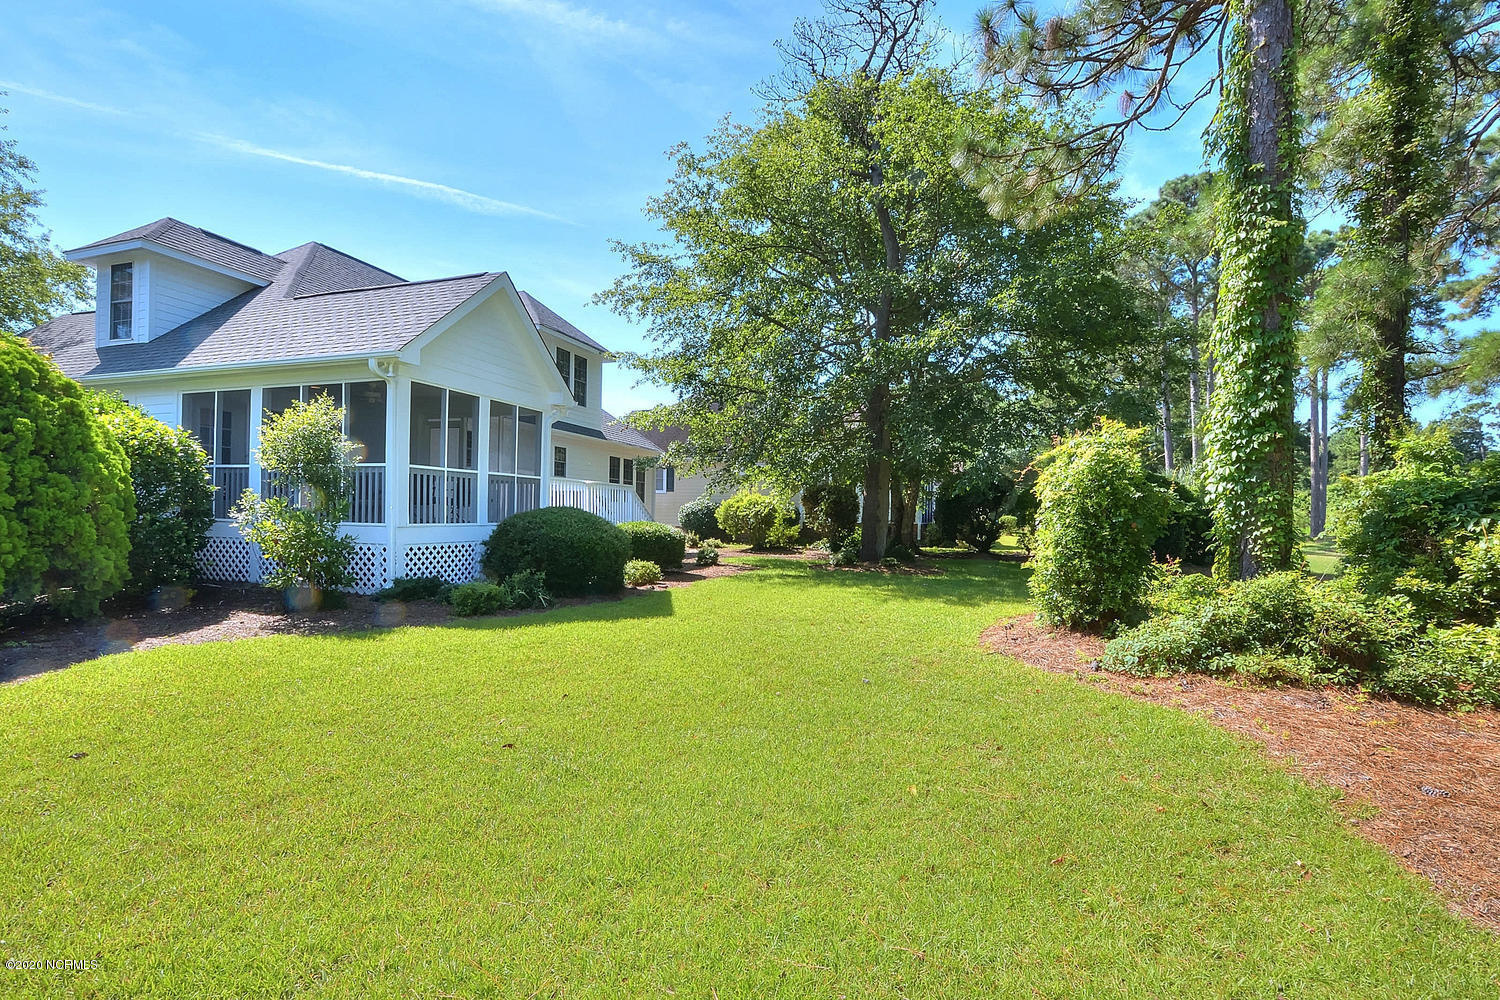 3486 Haskell Lane, Southport, North Carolina 28461, 4 Bedrooms Bedrooms, 7 Rooms Rooms,2 BathroomsBathrooms,Single family residence,For sale,Haskell,100225645